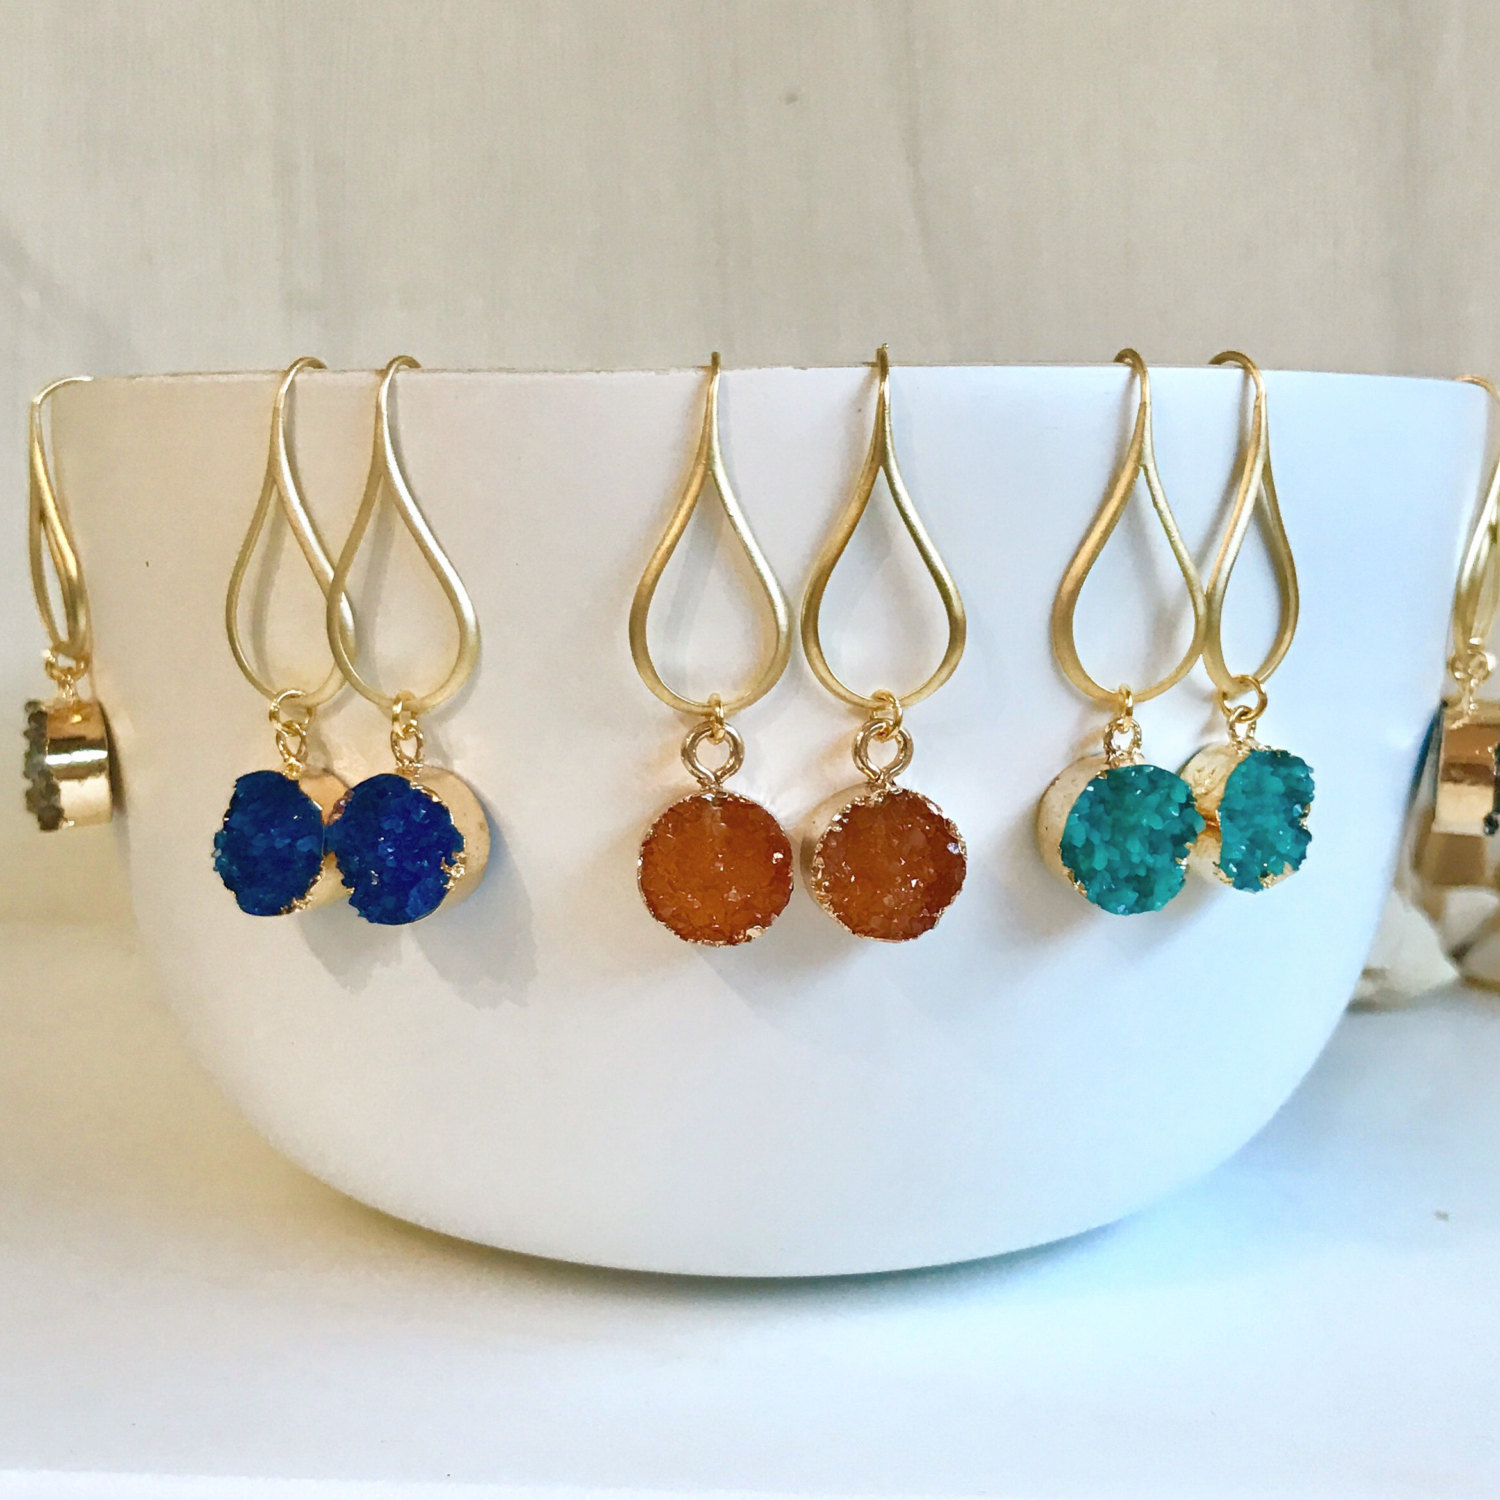 druzy earrings by Rustic Gem Jewelry | via Druzy Earrings Giveaway https://emmalinebride.com/2017-giveaway/druzy-earrings-giveaway/